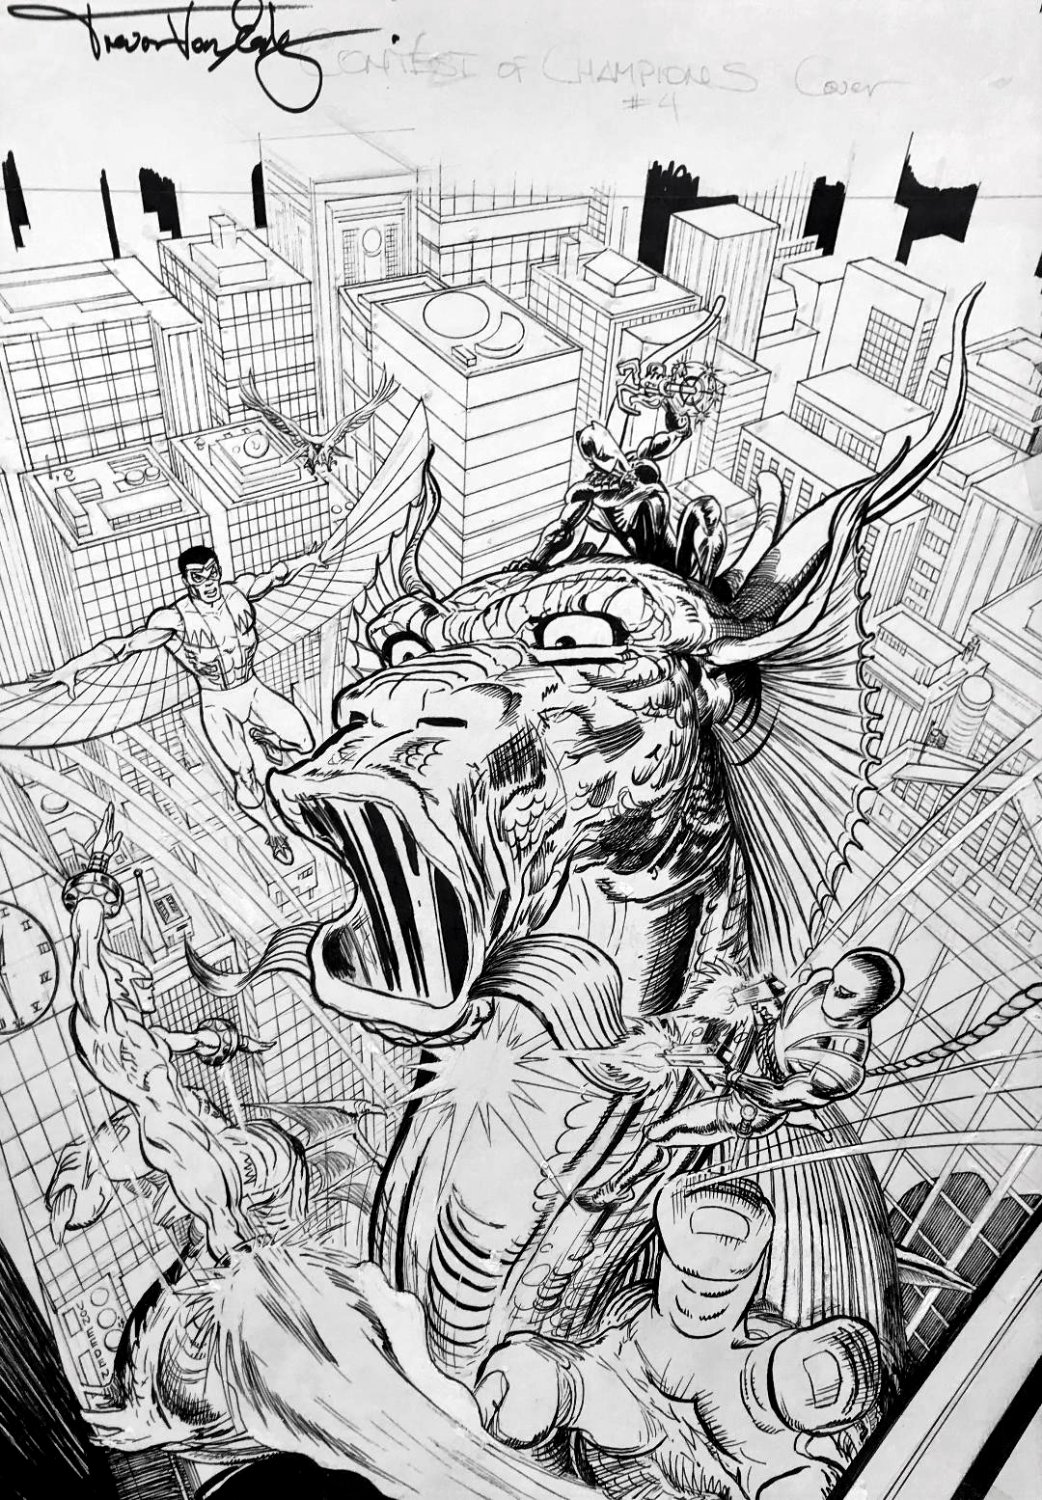 Contest of Champions #4 Cover (Black Panther, Falcon, Torpedo, Union Jack Battling Fin-Fang-Foom!) 2015